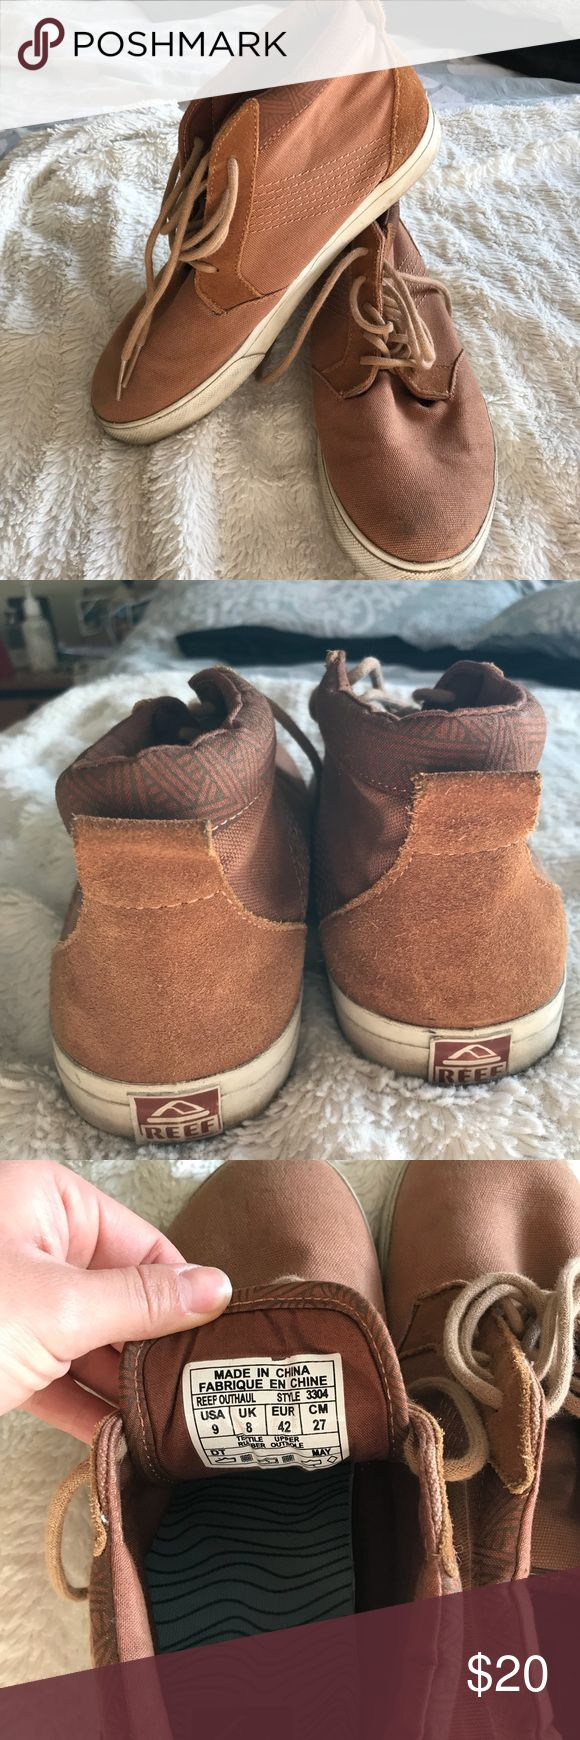 EUC reef men's shoe Size 9 reef shoes only worn a couple of times Reef Shoes Sneakers